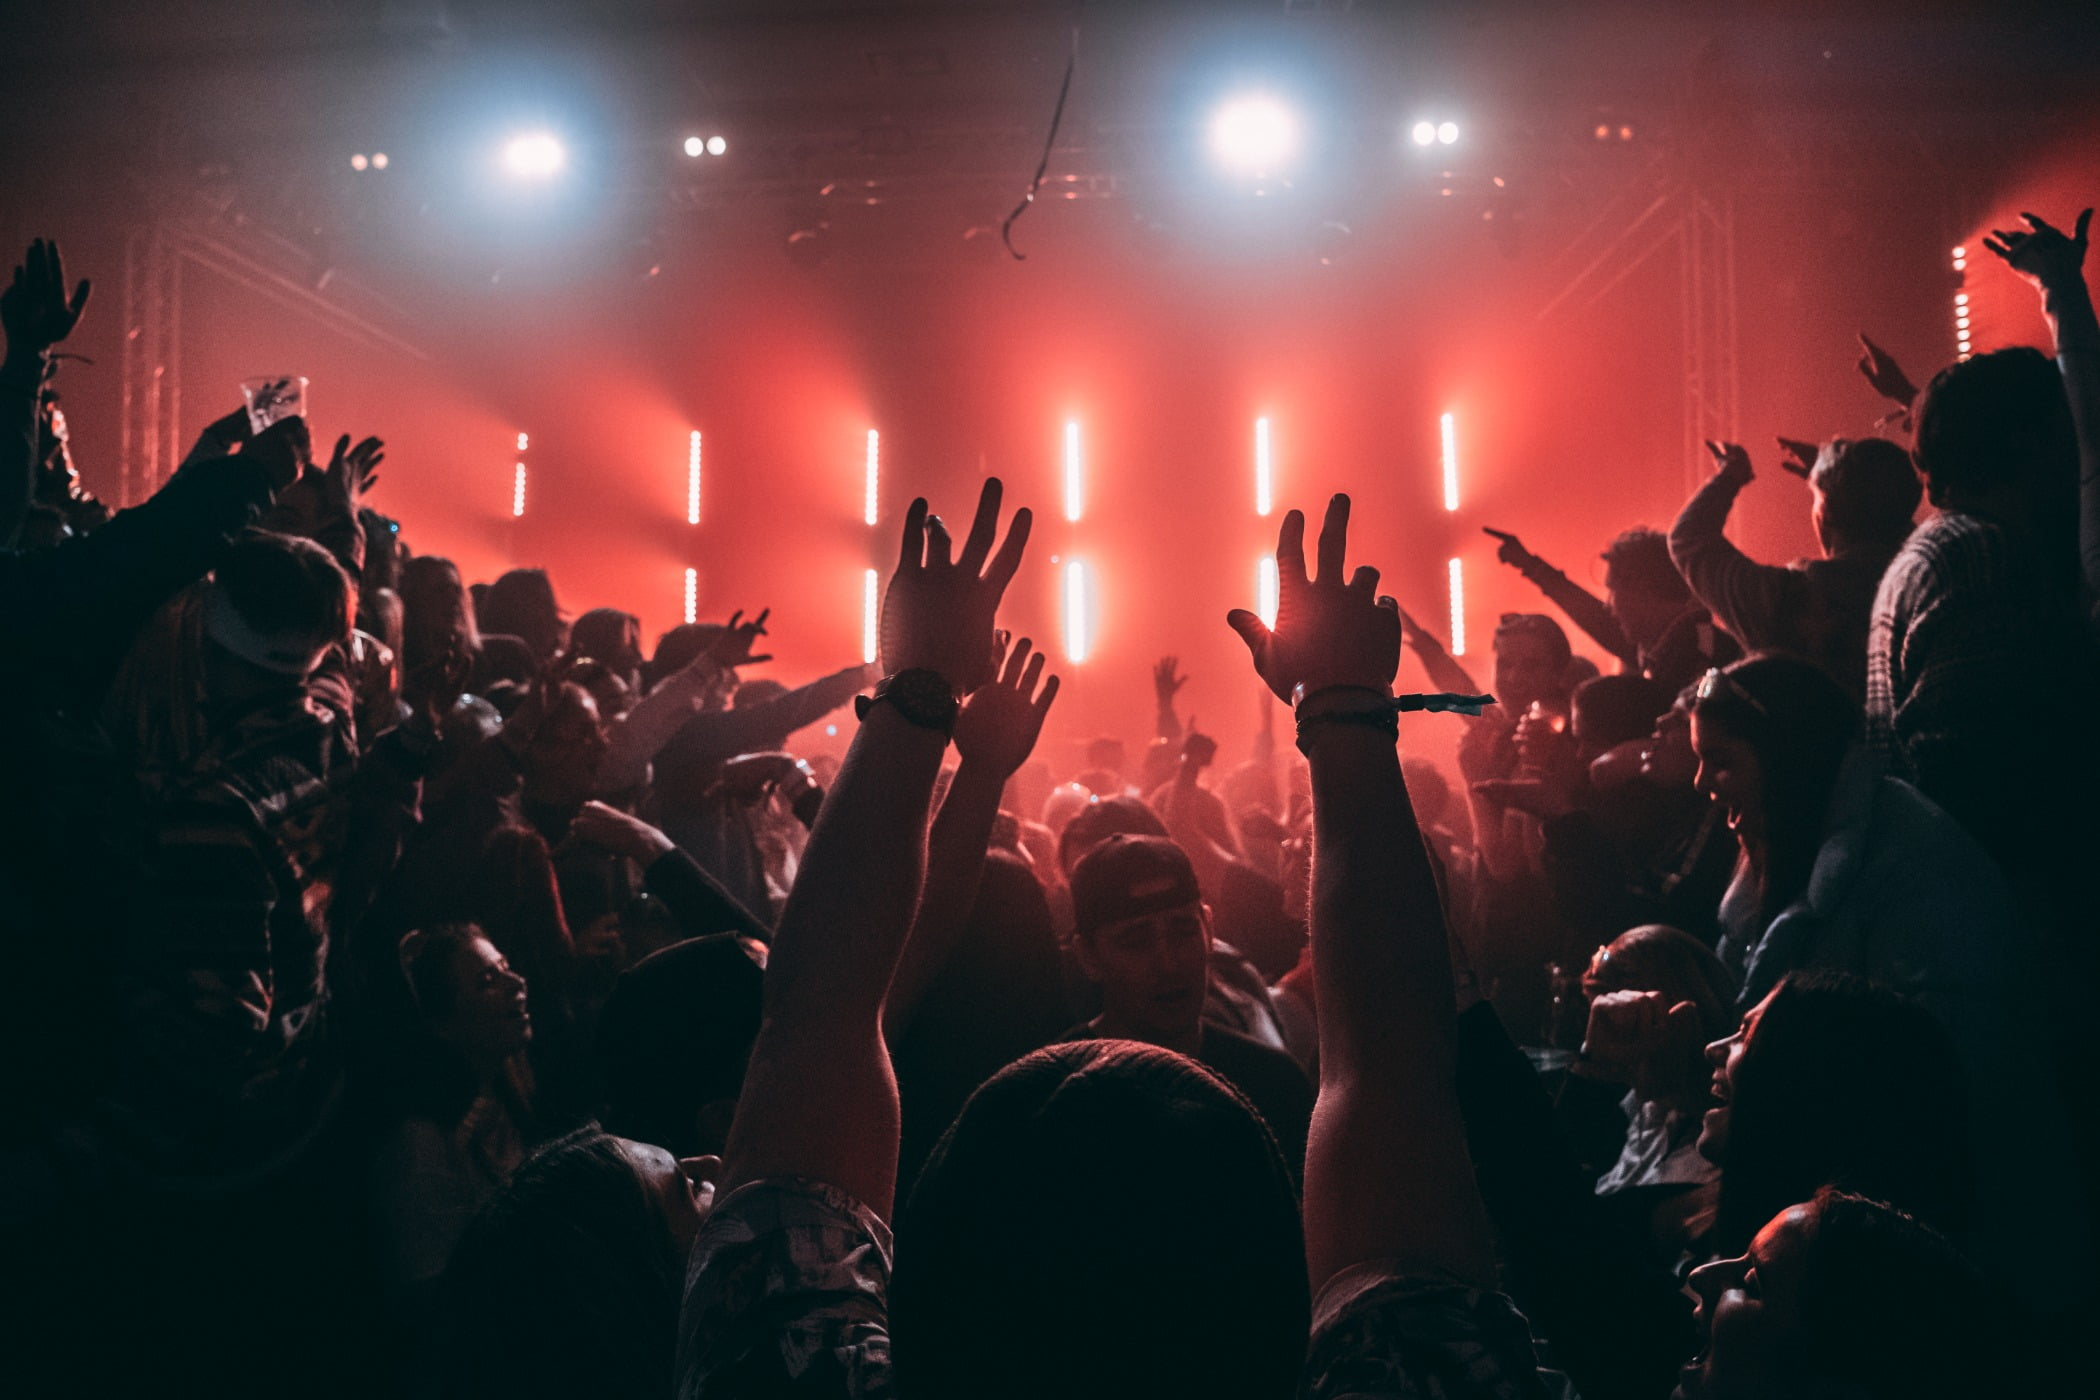 Performing arts, Social group, Audience, Hand, Music, Entertainment, Event, People, Crowd, Finger